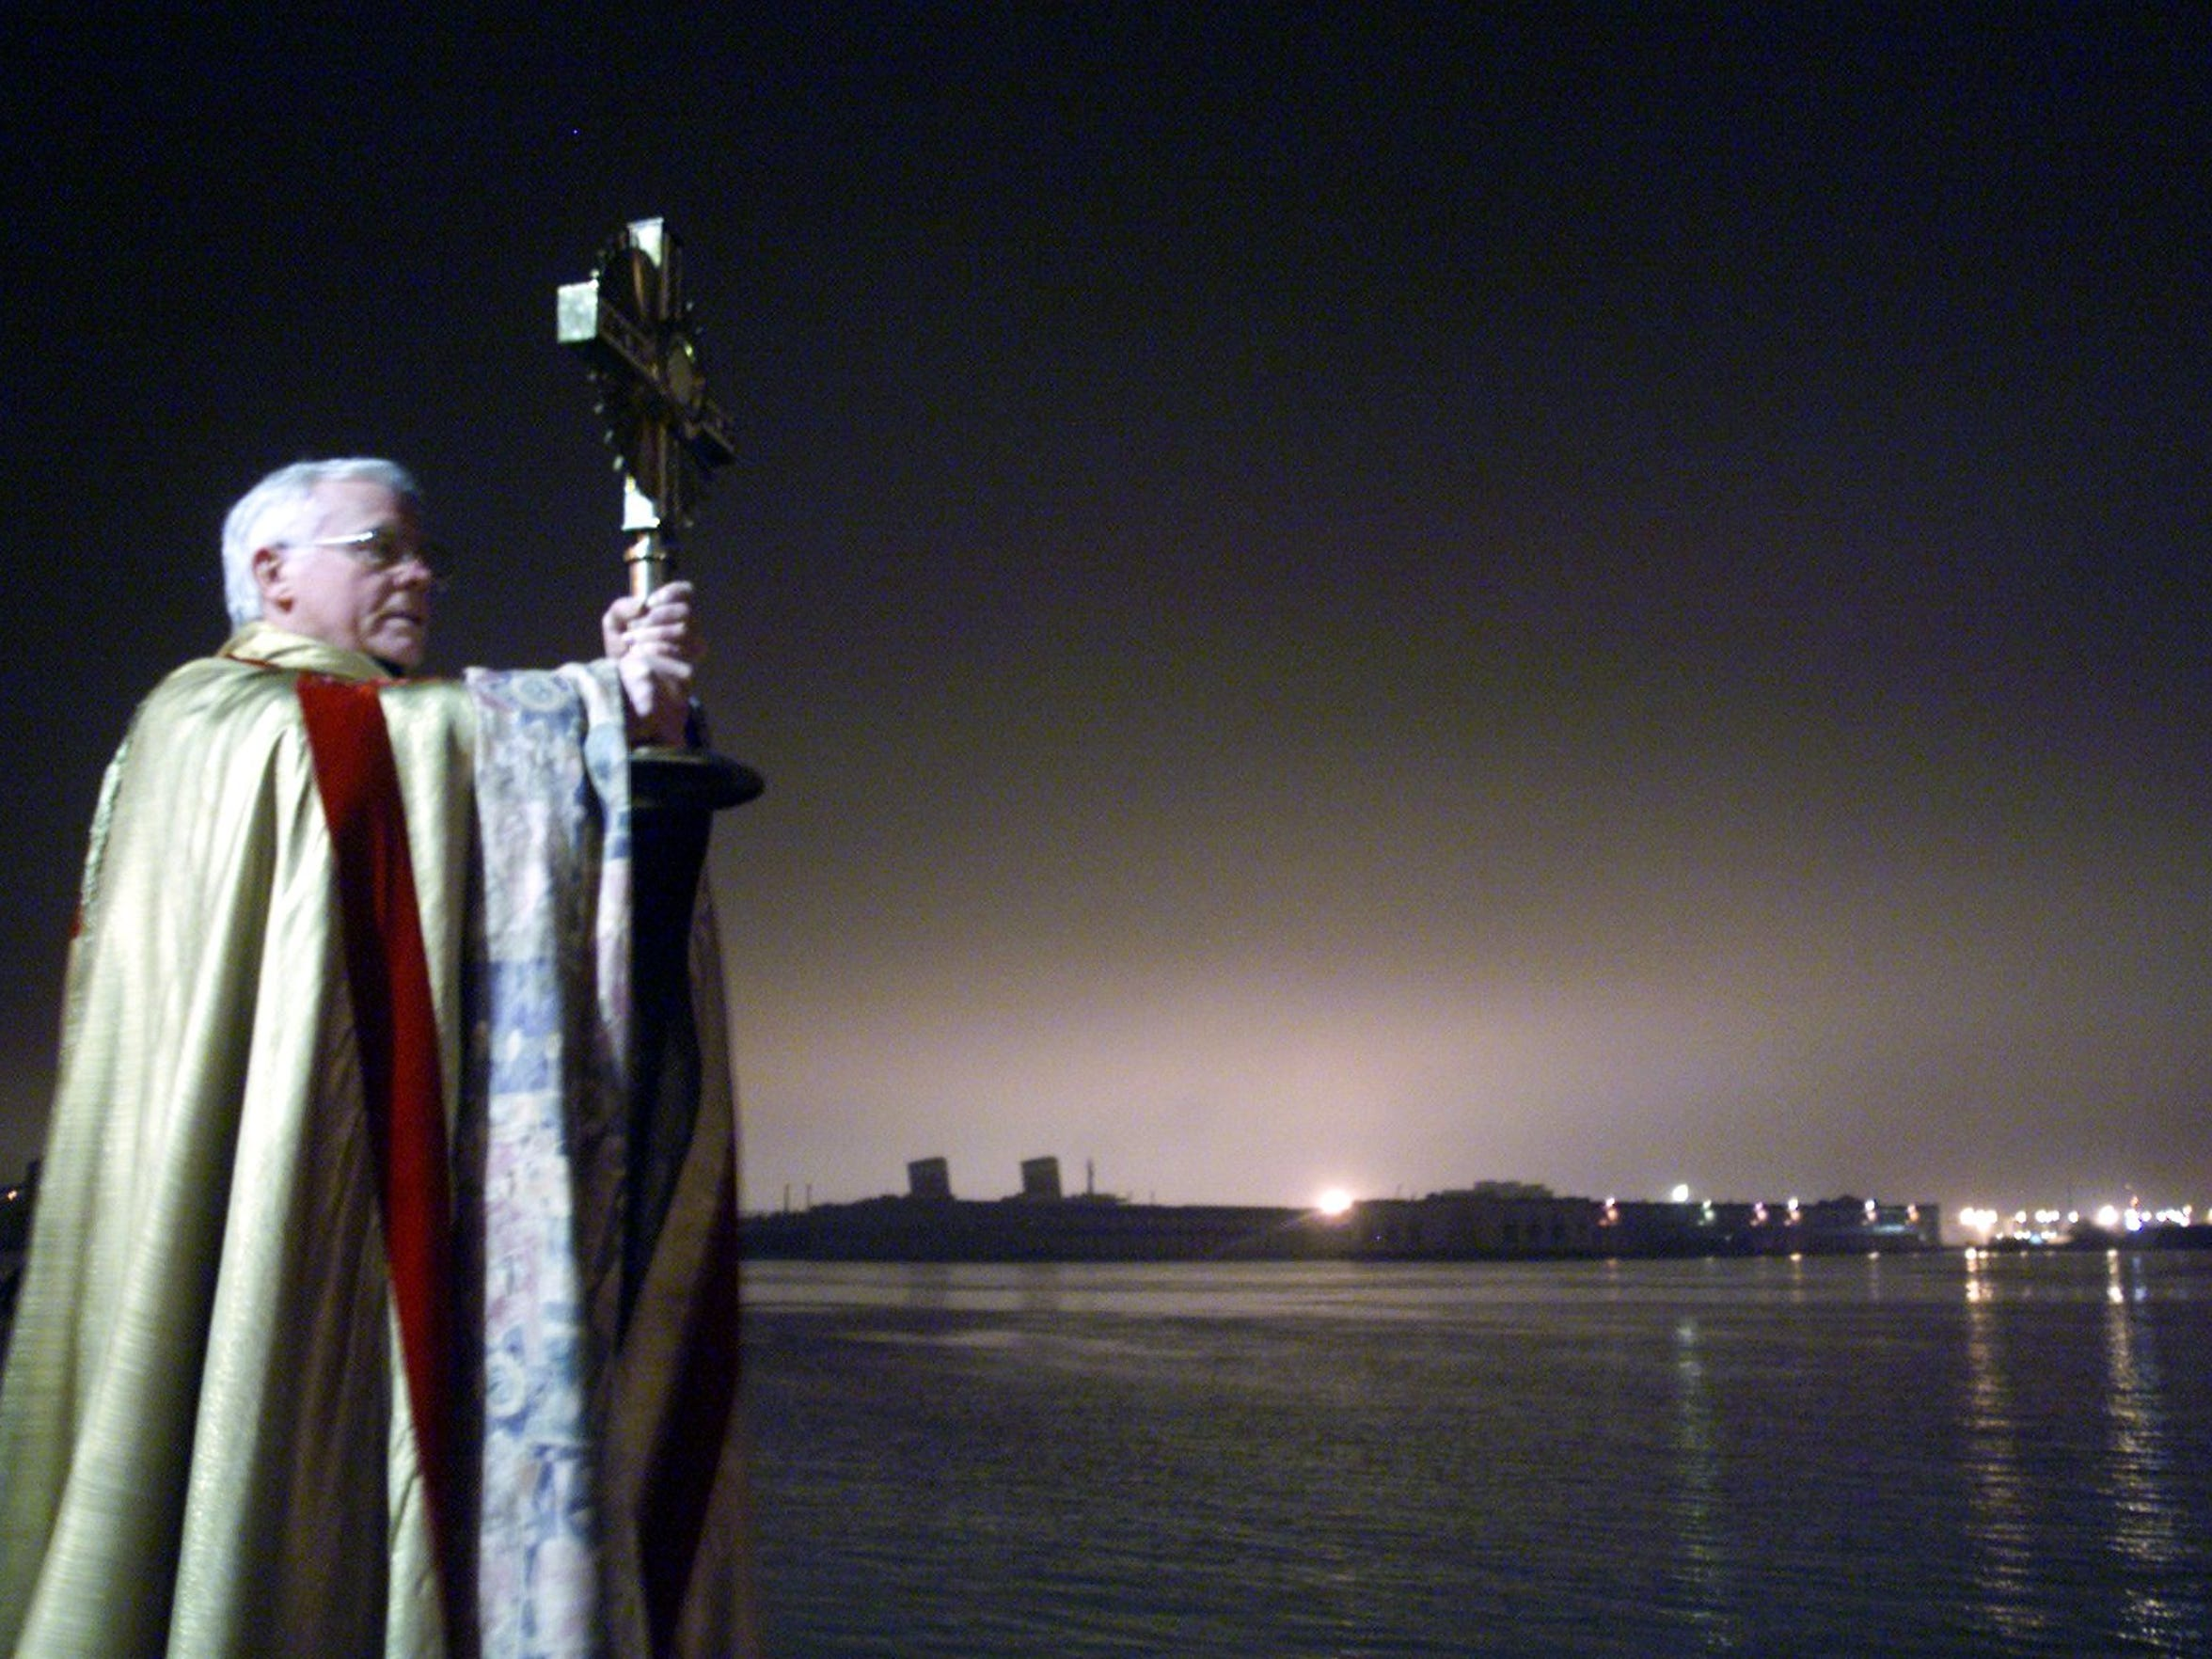 Monsignor Michael Doyle blesses the Delaware River